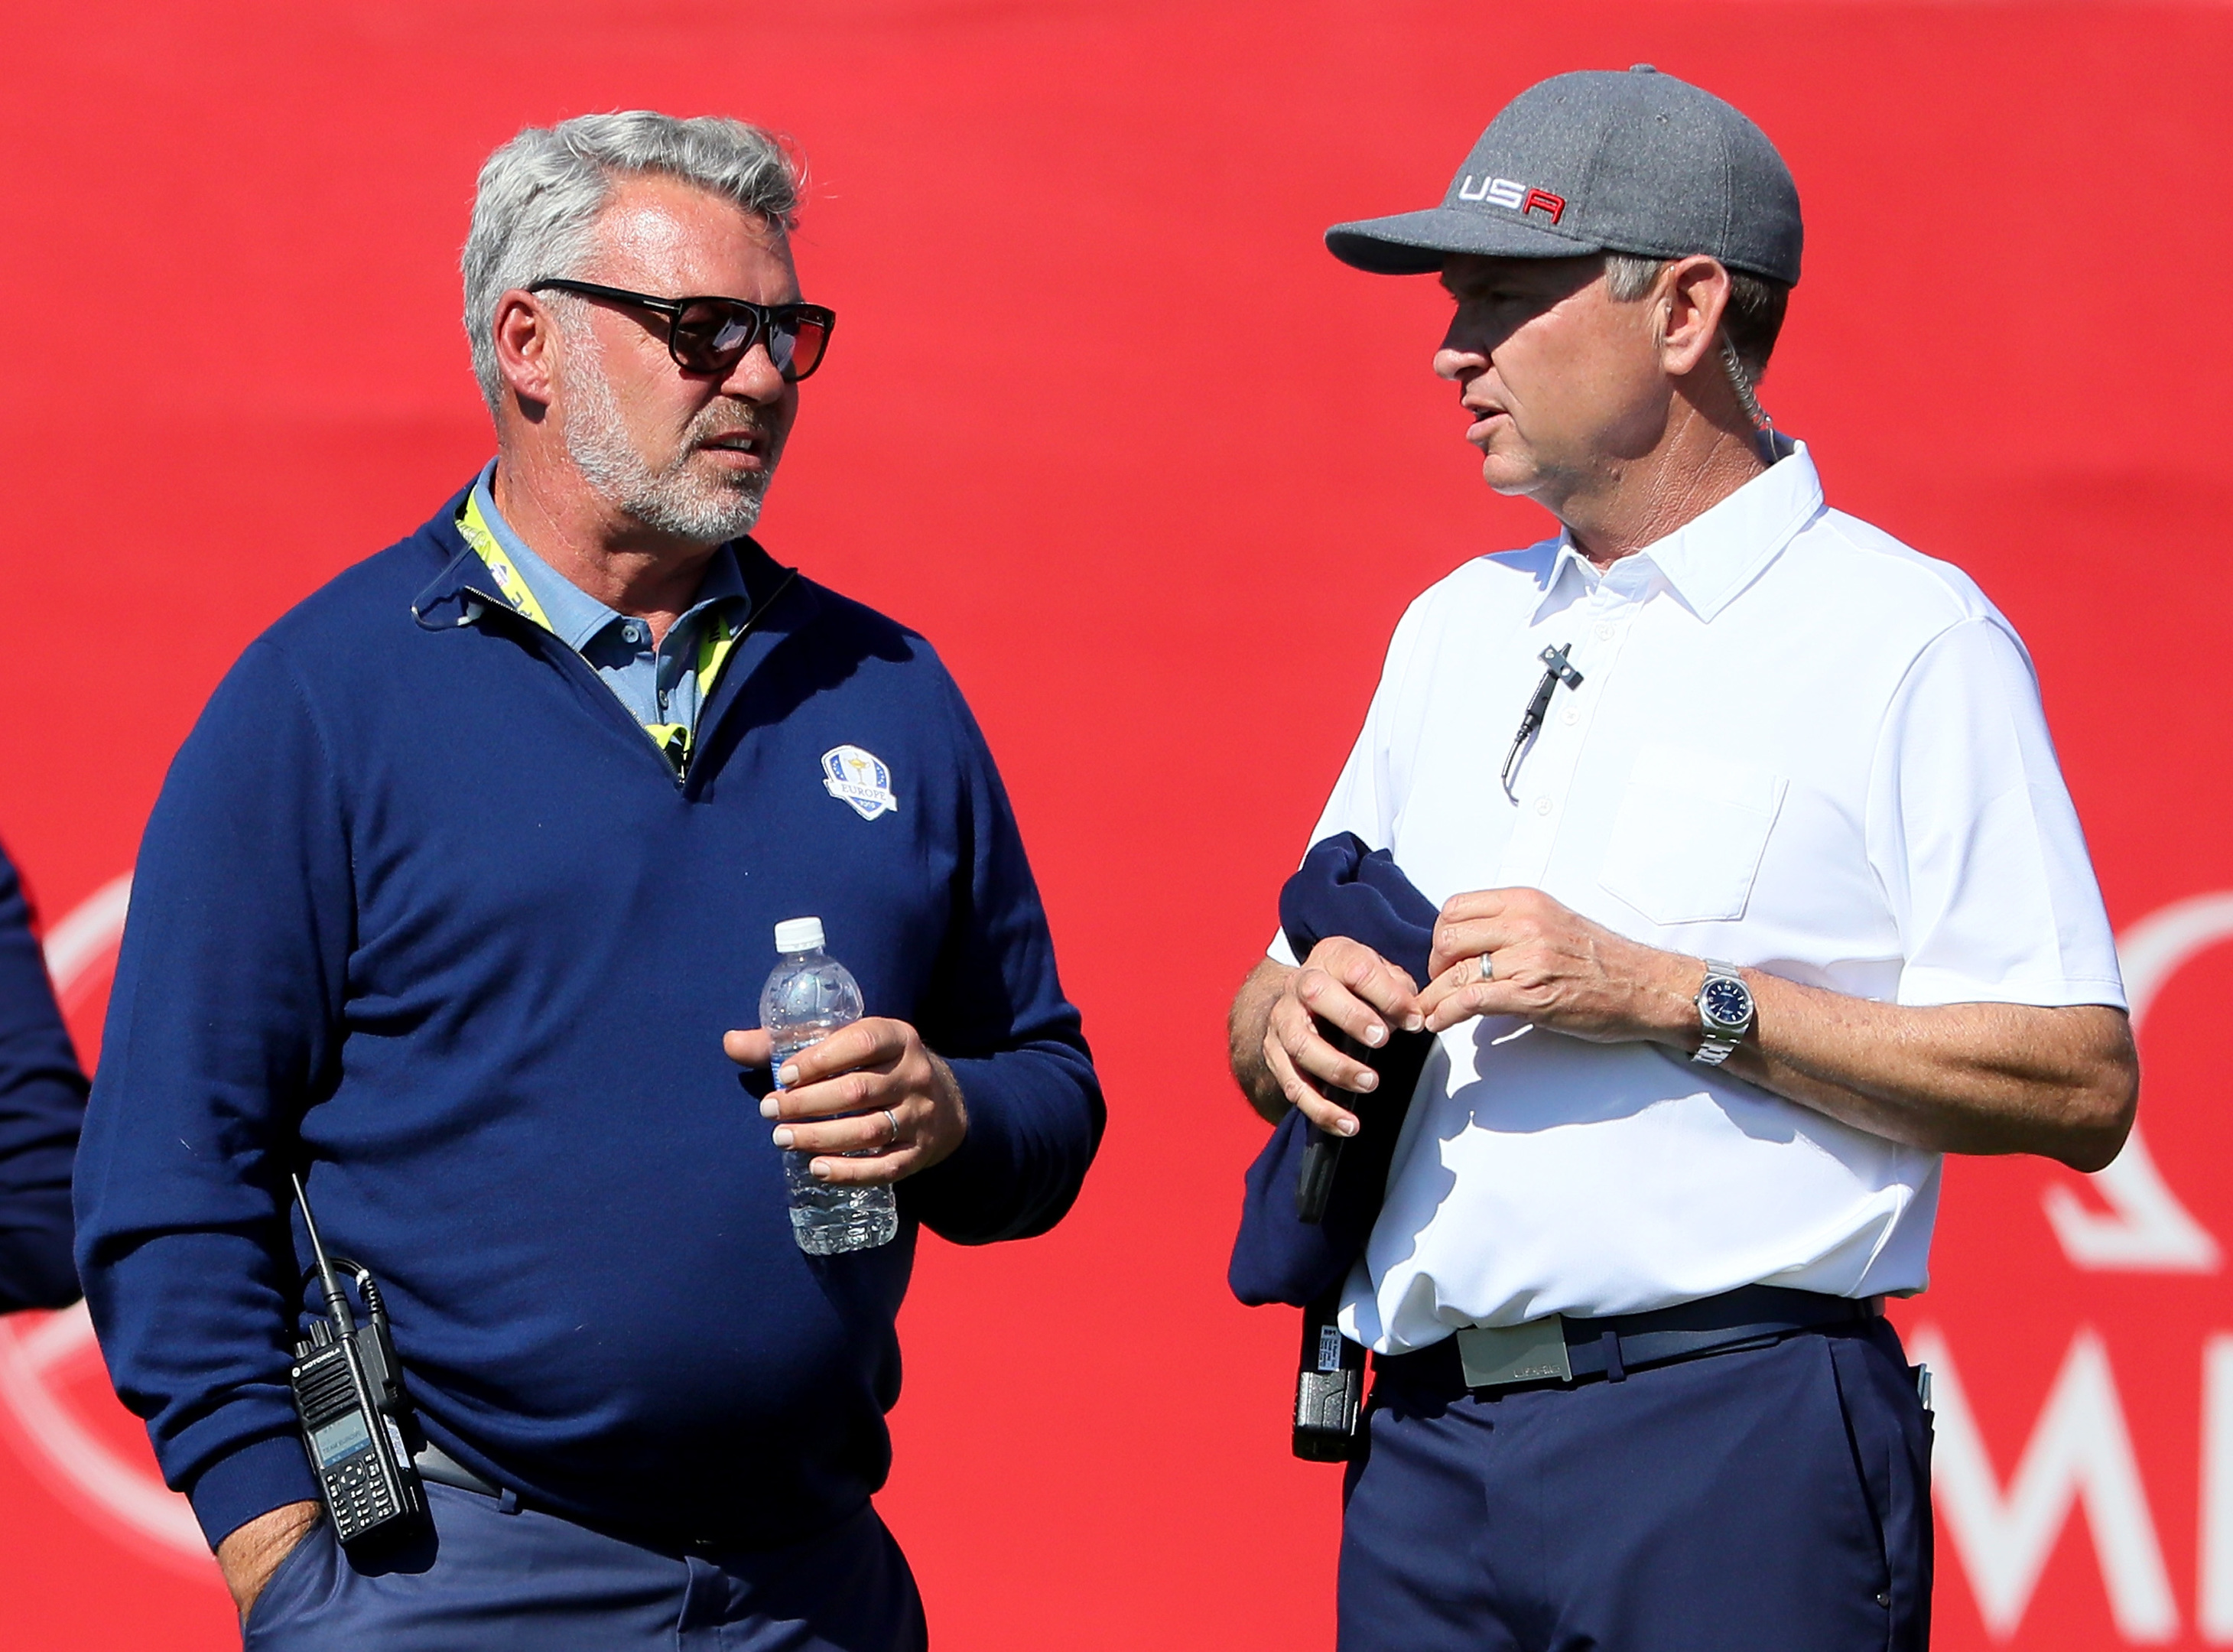 Darren Clarke and Davis Love III suffered through a fluctuating first day at Hazeltine.